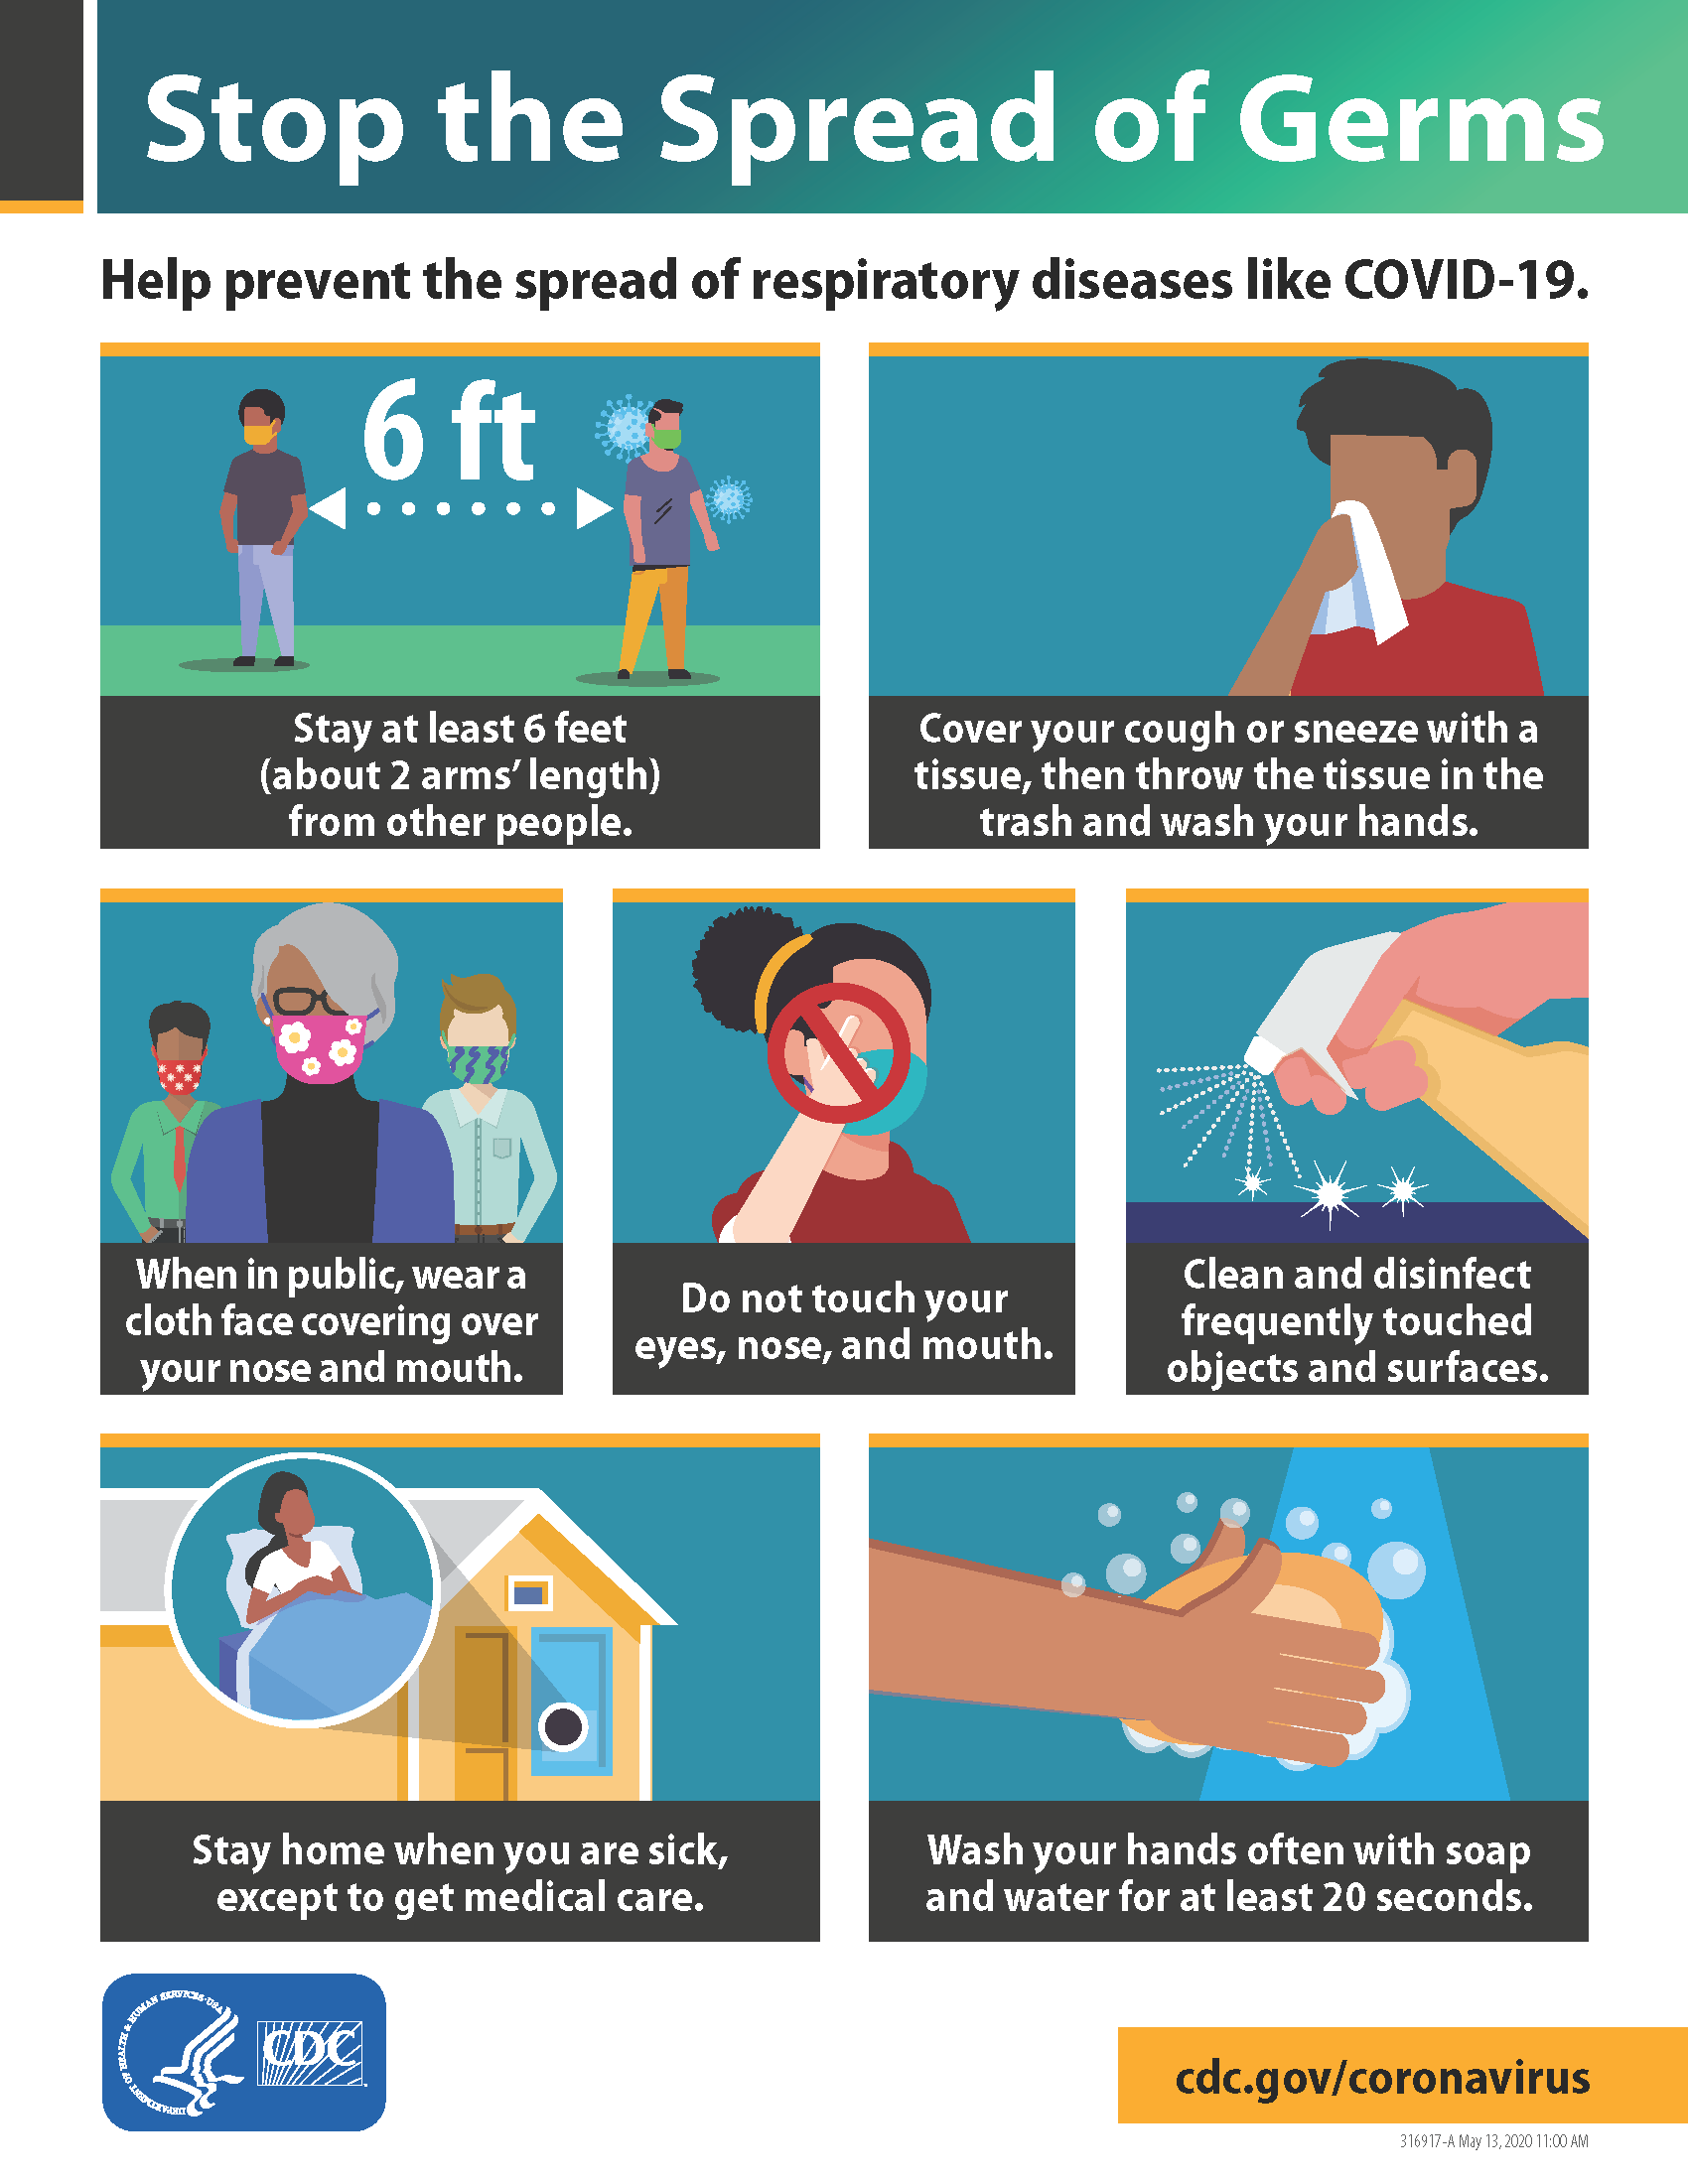 CDC 'Stop the Spread of Germs' infographic